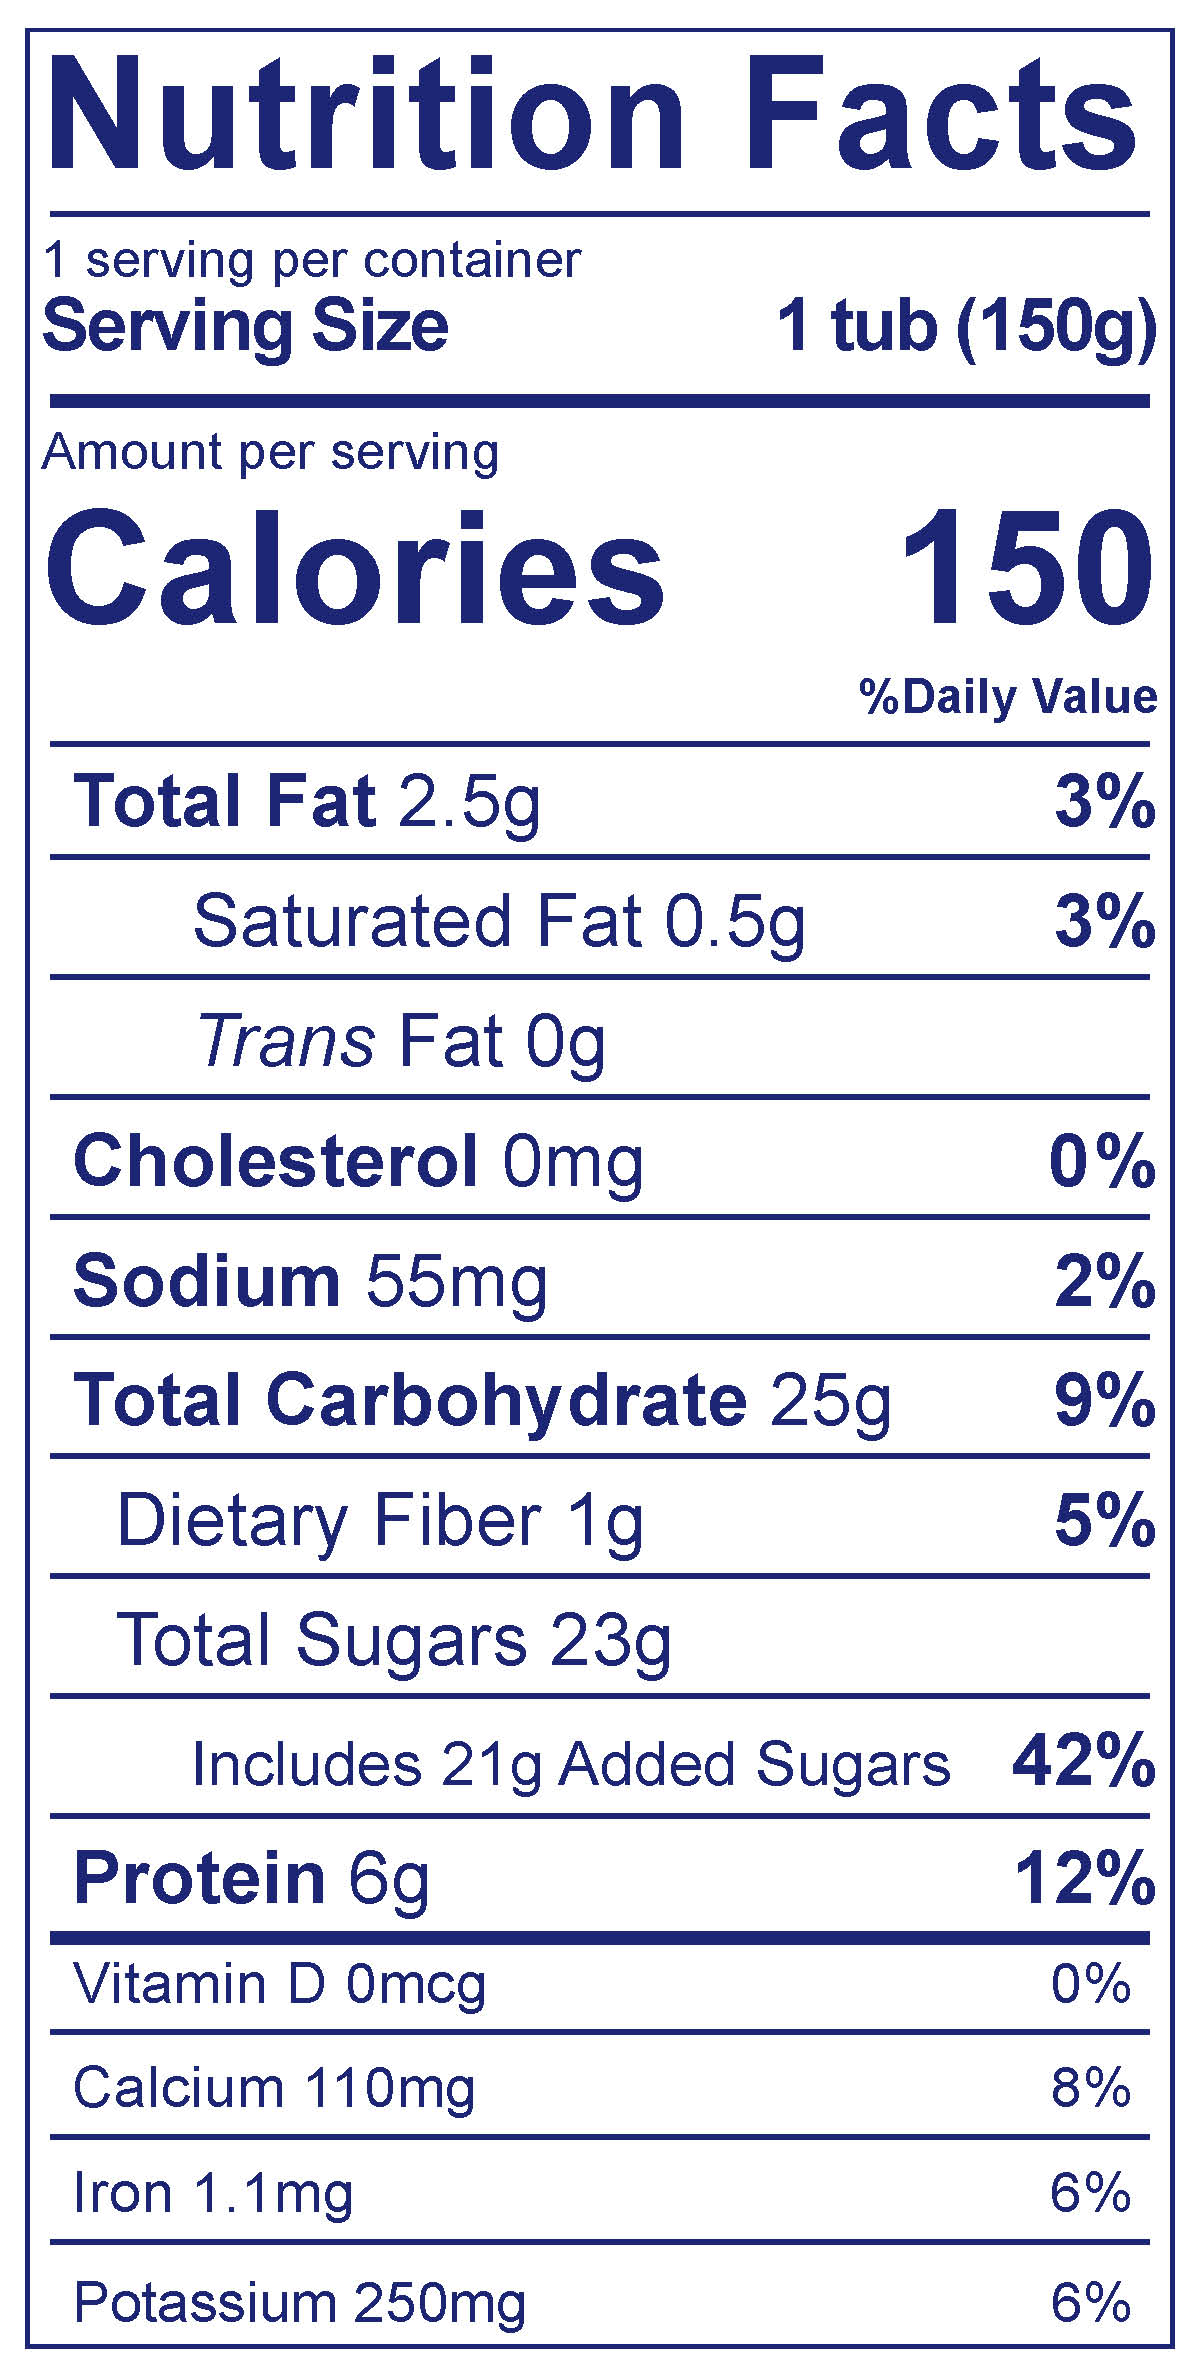 Dairy Free Blueberry - Nutrition Facts